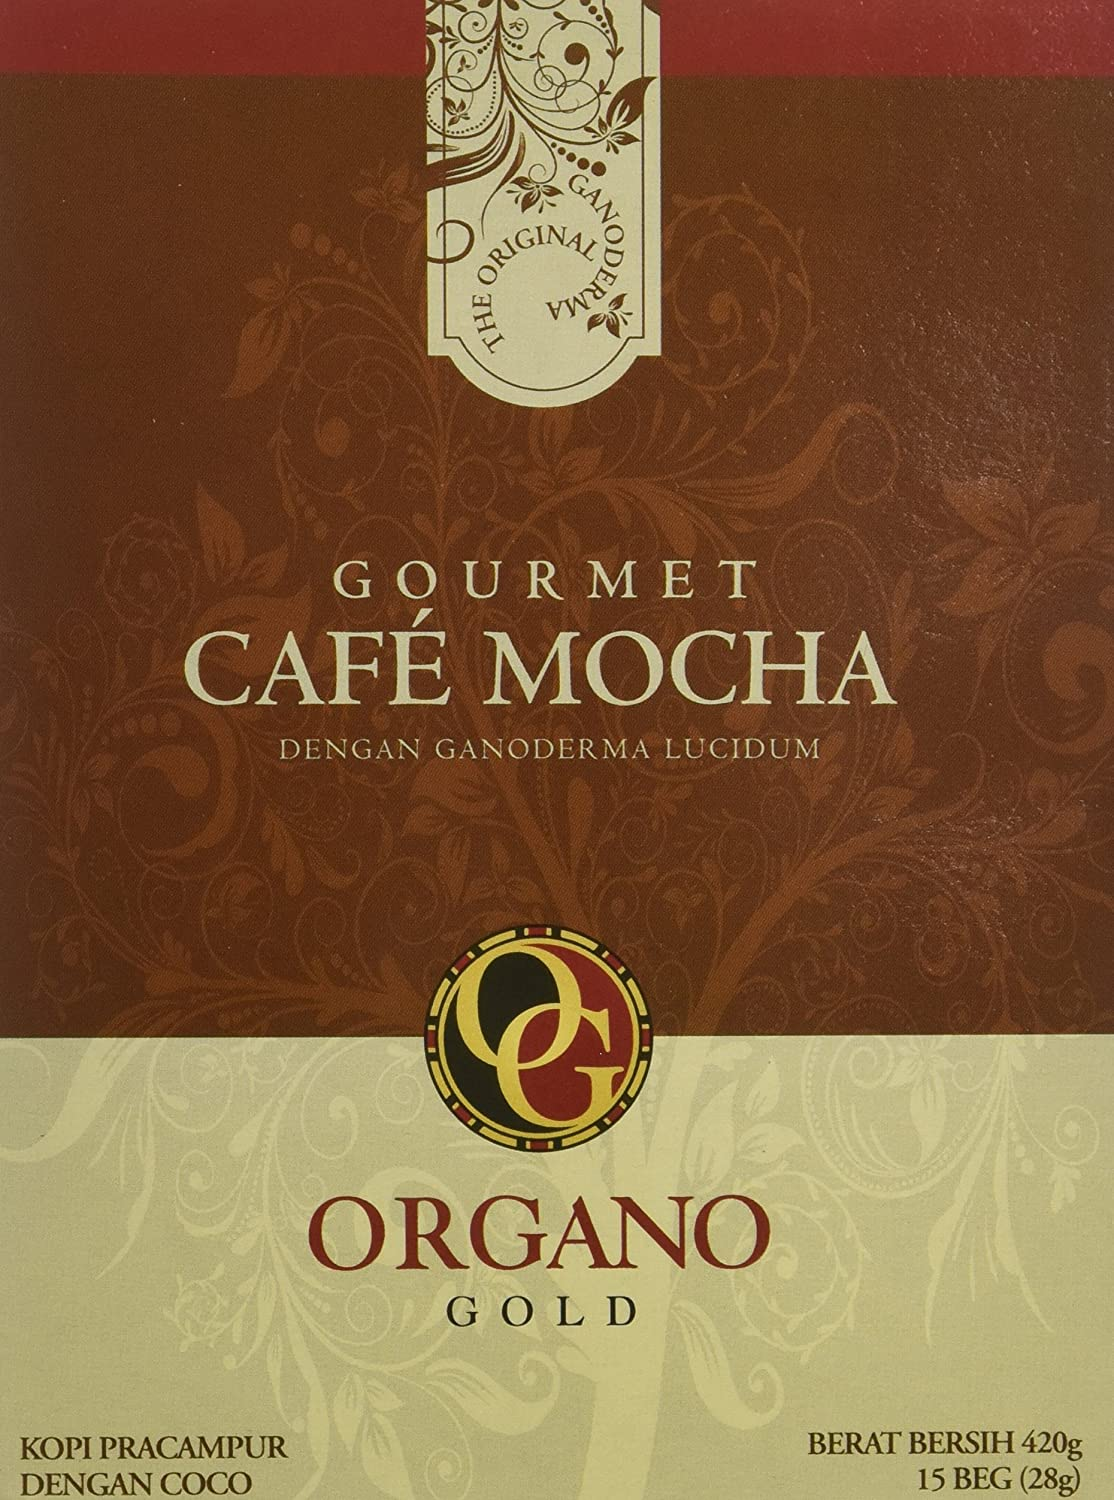 2 sale Now on sale Boxes of Organo Gold Ganoderma Mocha Gourmet 1 - Cafe